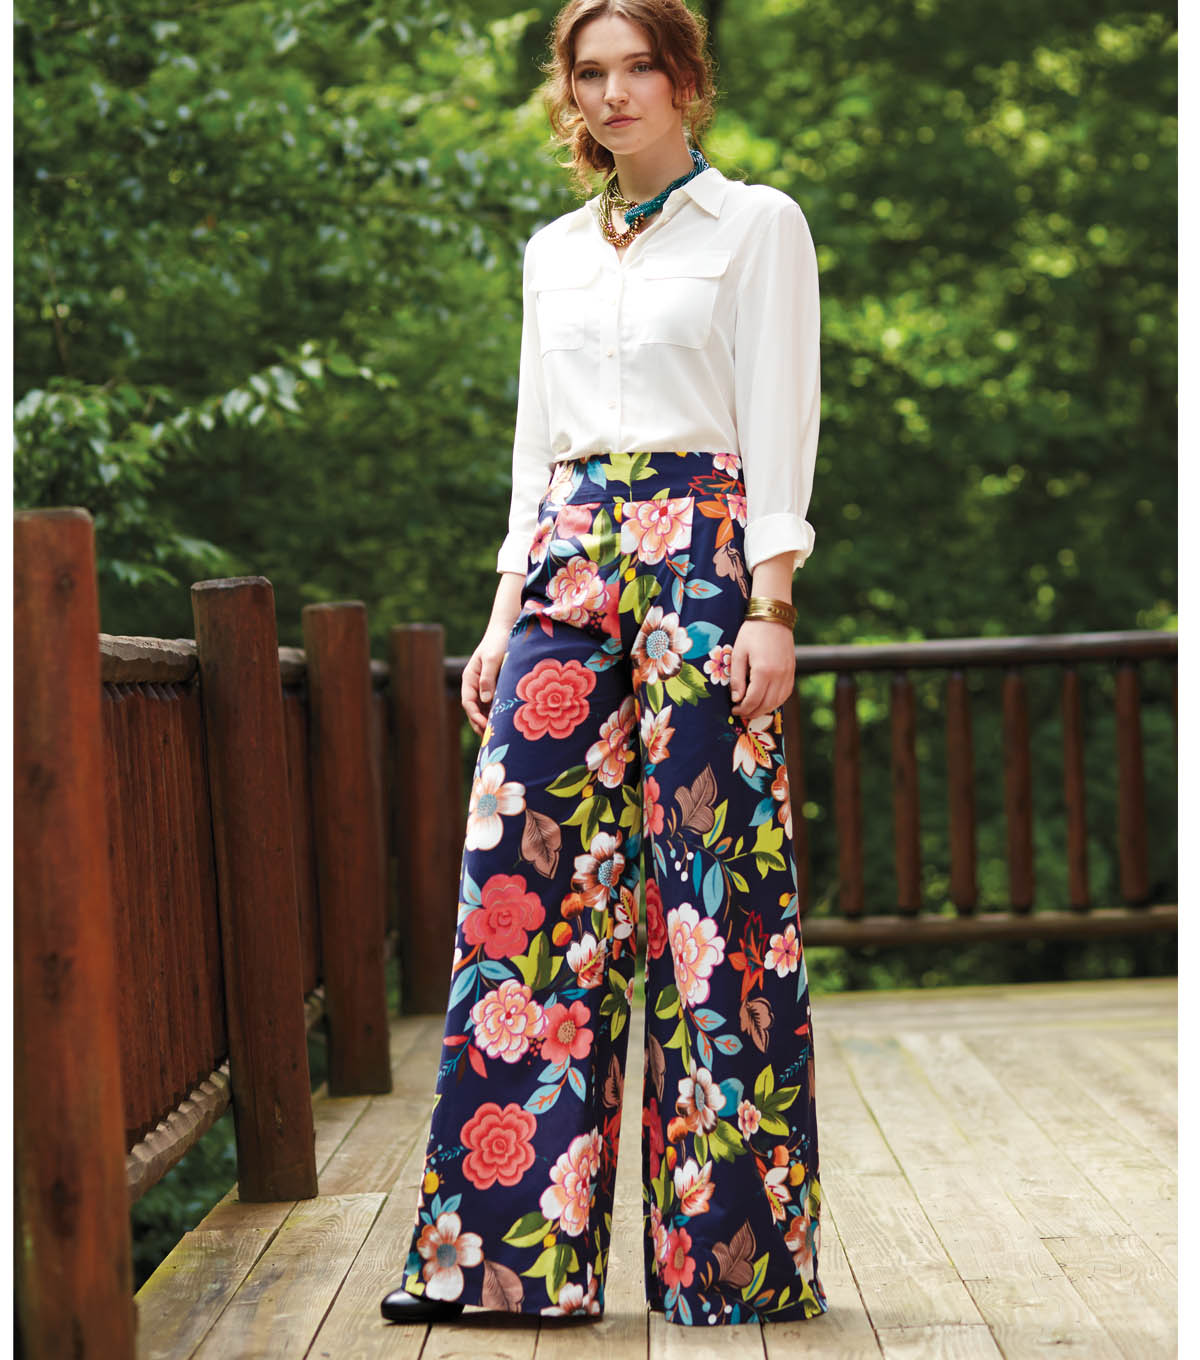 Free pattern alert 15 pants and skirts sewing tutorials on the wide leg pants pattern jeuxipadfo Images